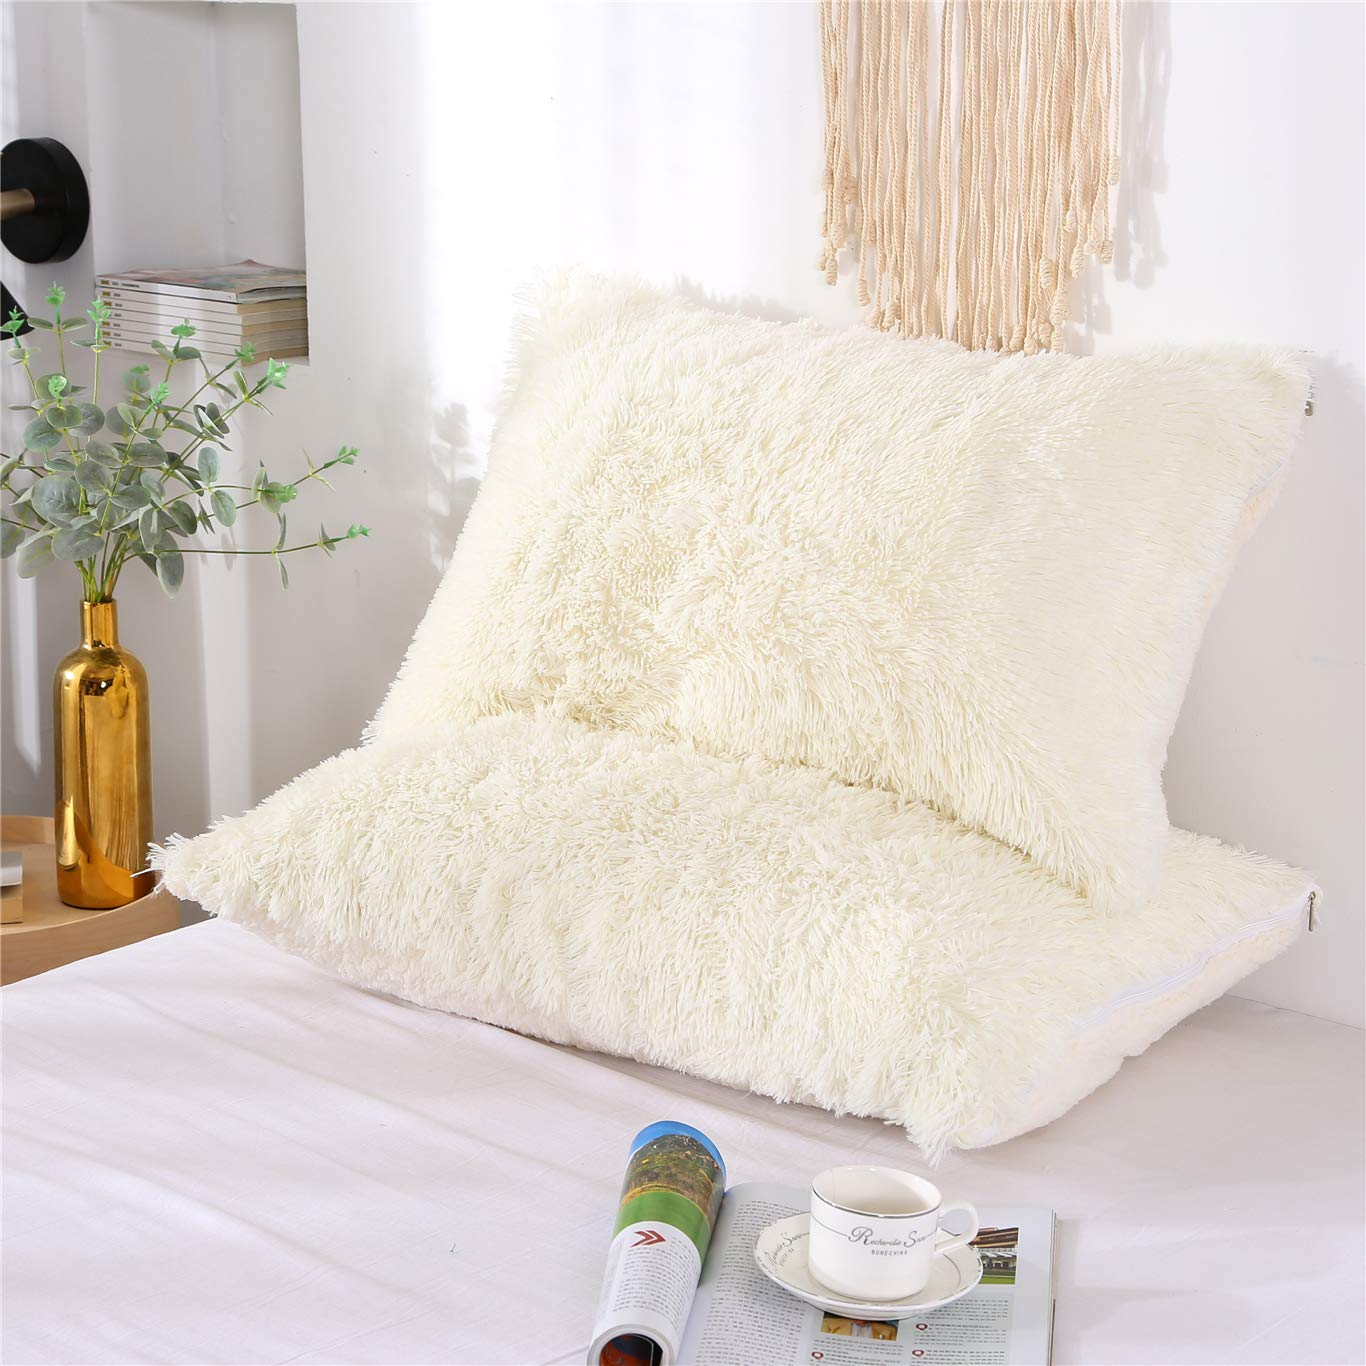 """MooWoo Fluffy Pillowcase Standard Size Set of 2, Creamy White, Sherpa Shaggy Pillow Cases Decorative Covers with Zipper, 20""""x30"""""""